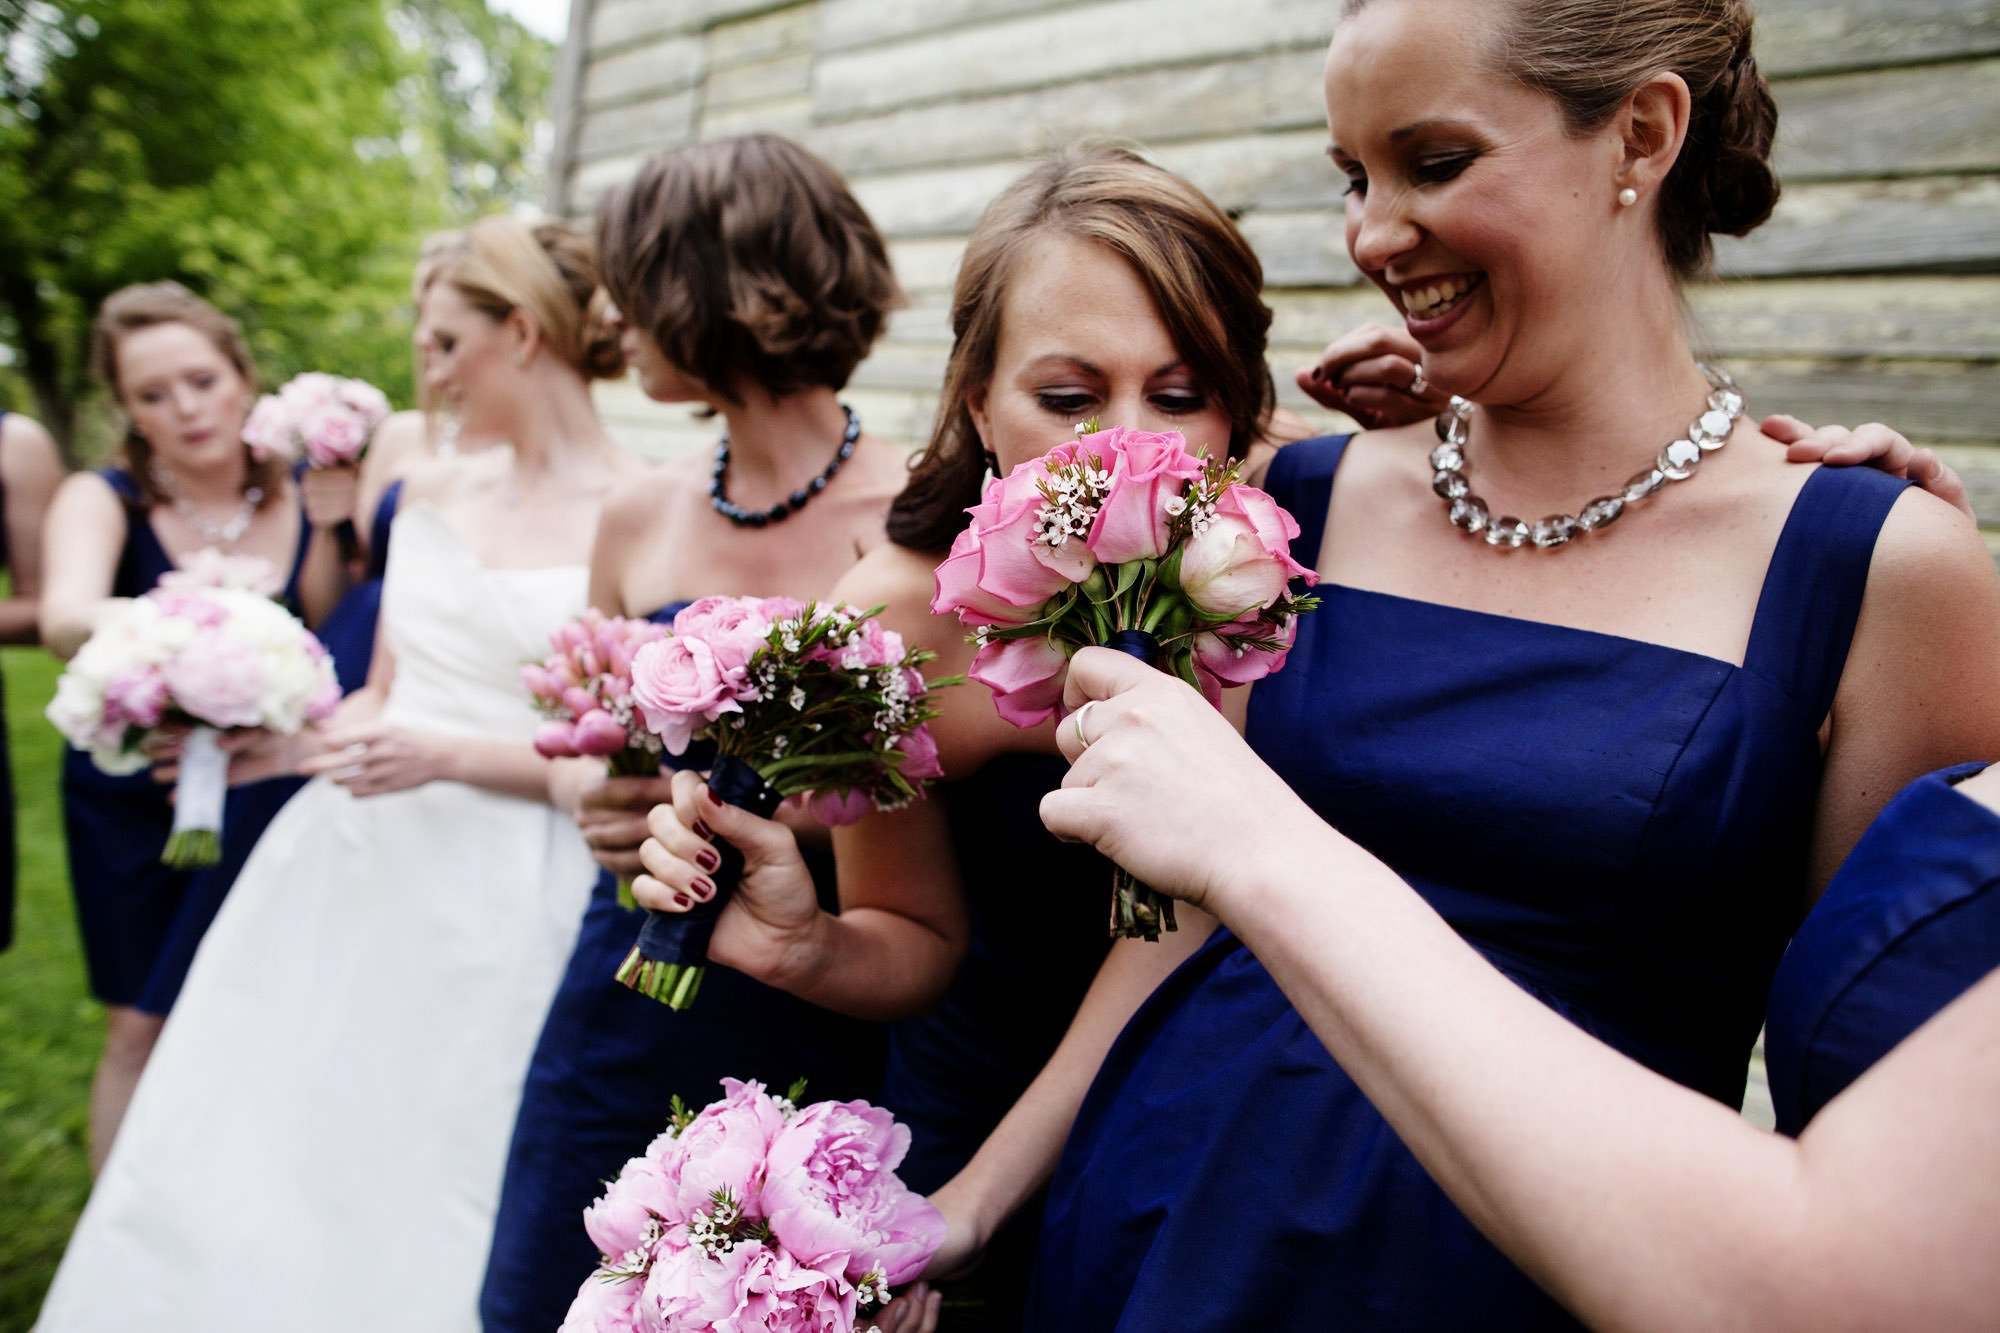 The bridesmaids smell each other's flowers on the Oaks Waterfront Inn and Events Wedding day.